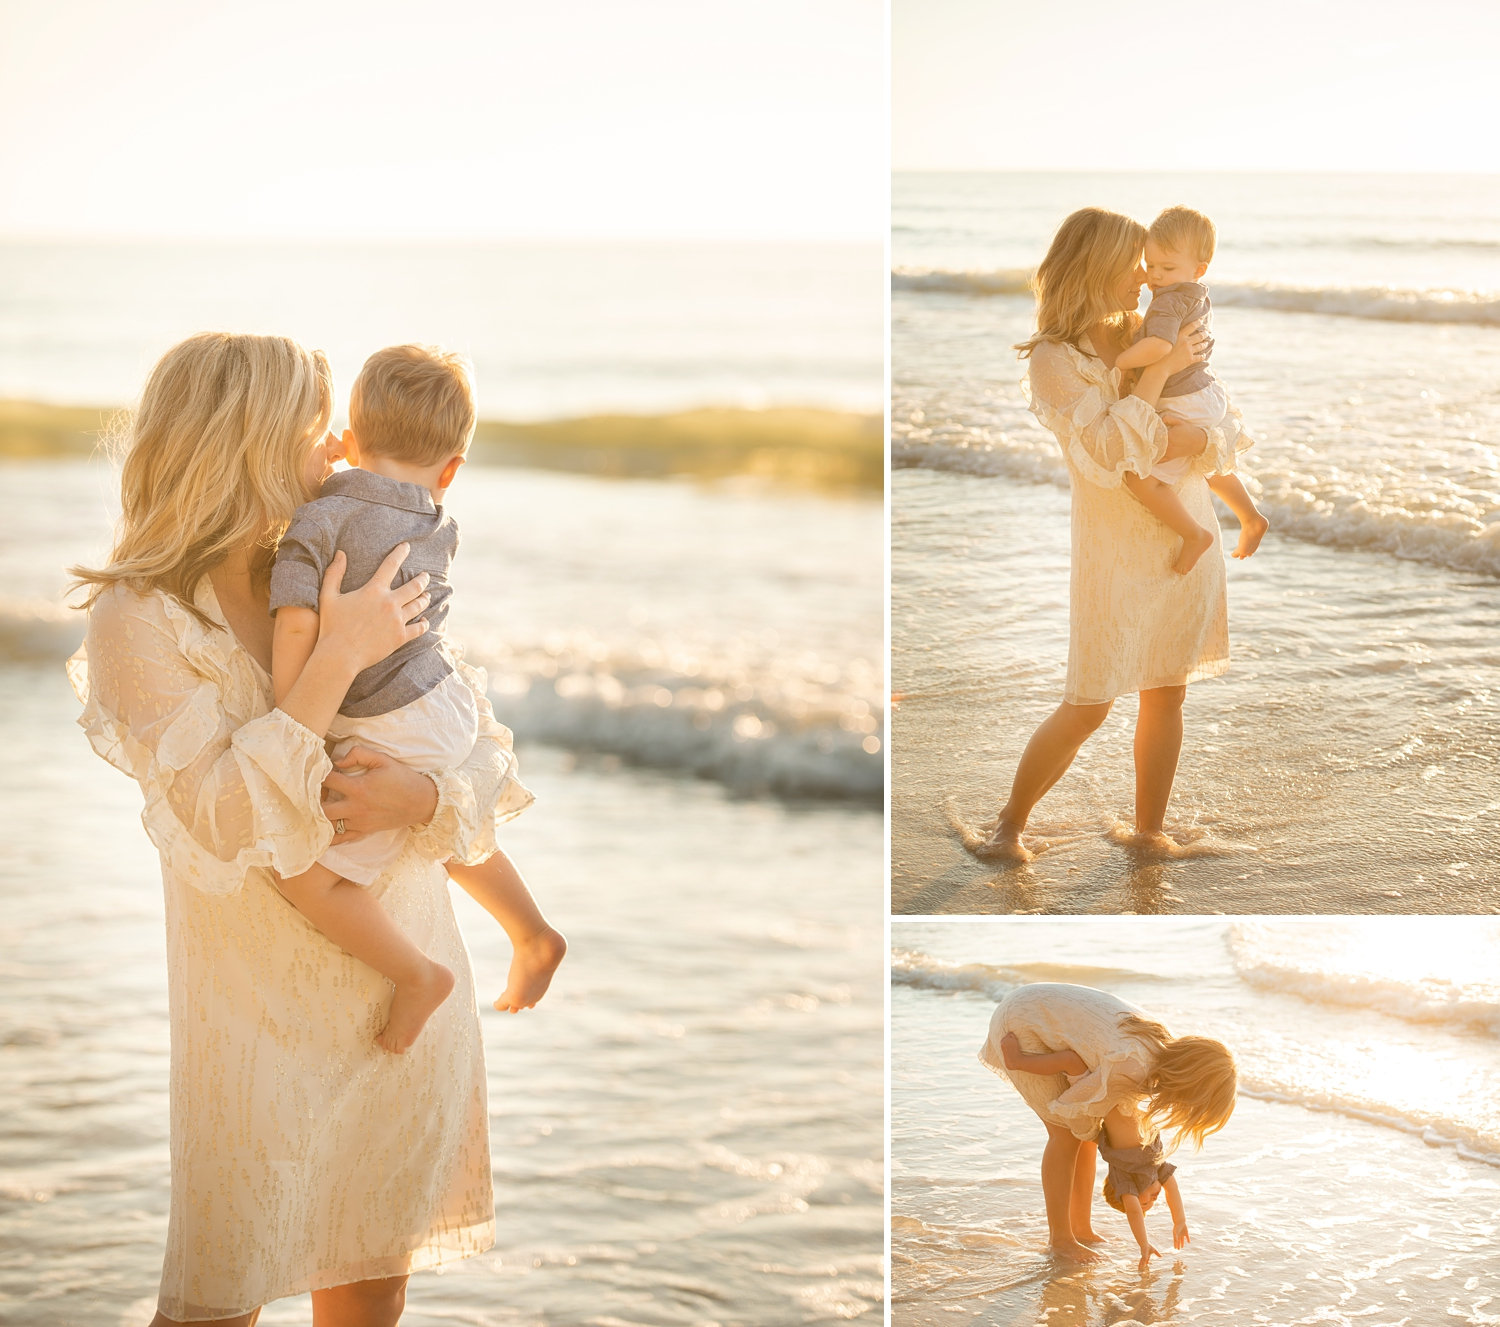 mother and son on beach, beach family photography, Naples, Florida, Ryaphotos